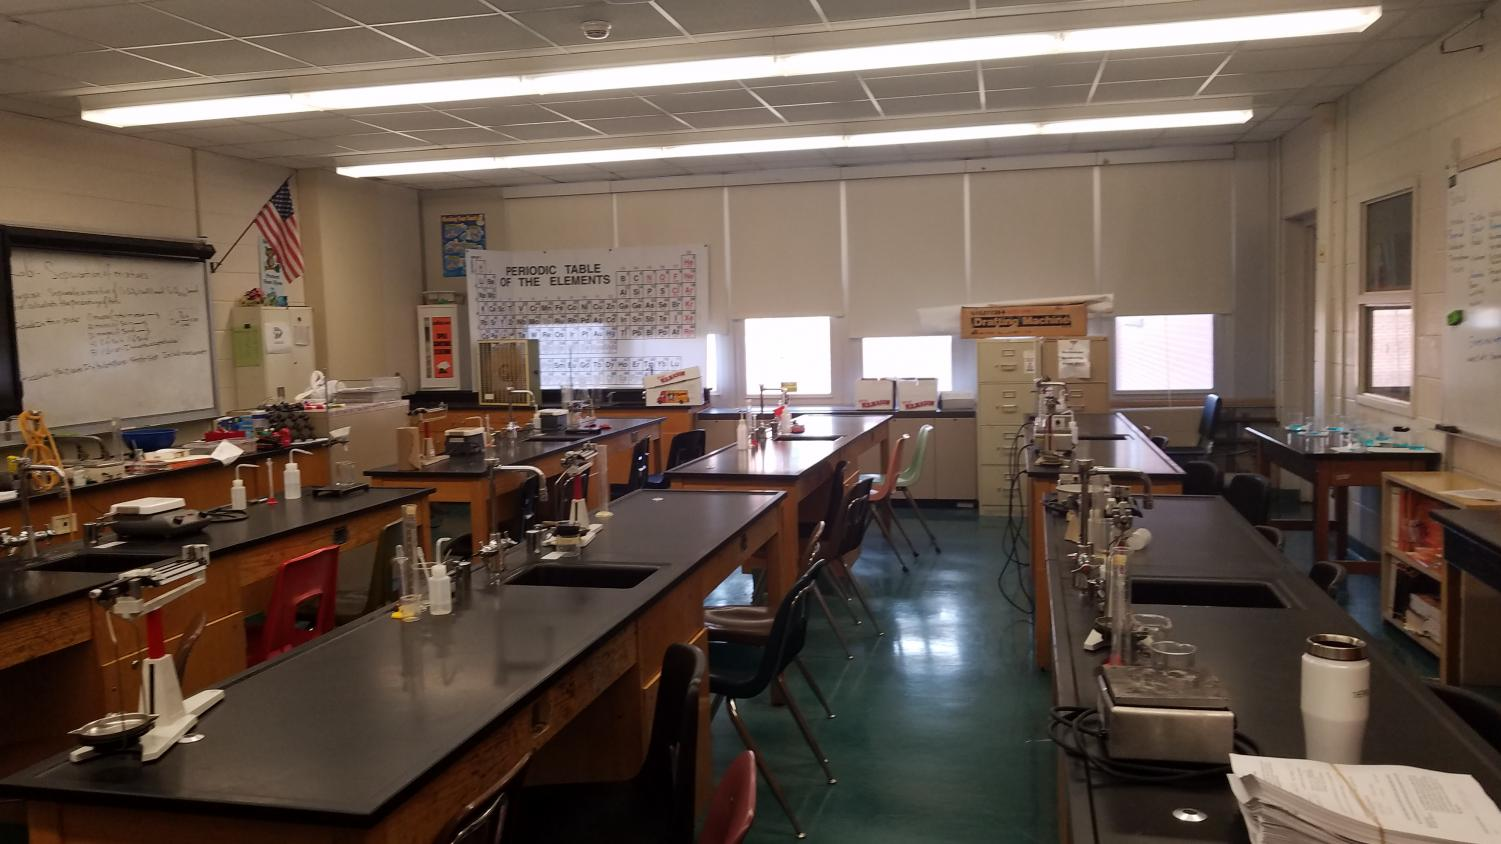 A science lab is set and ready for students